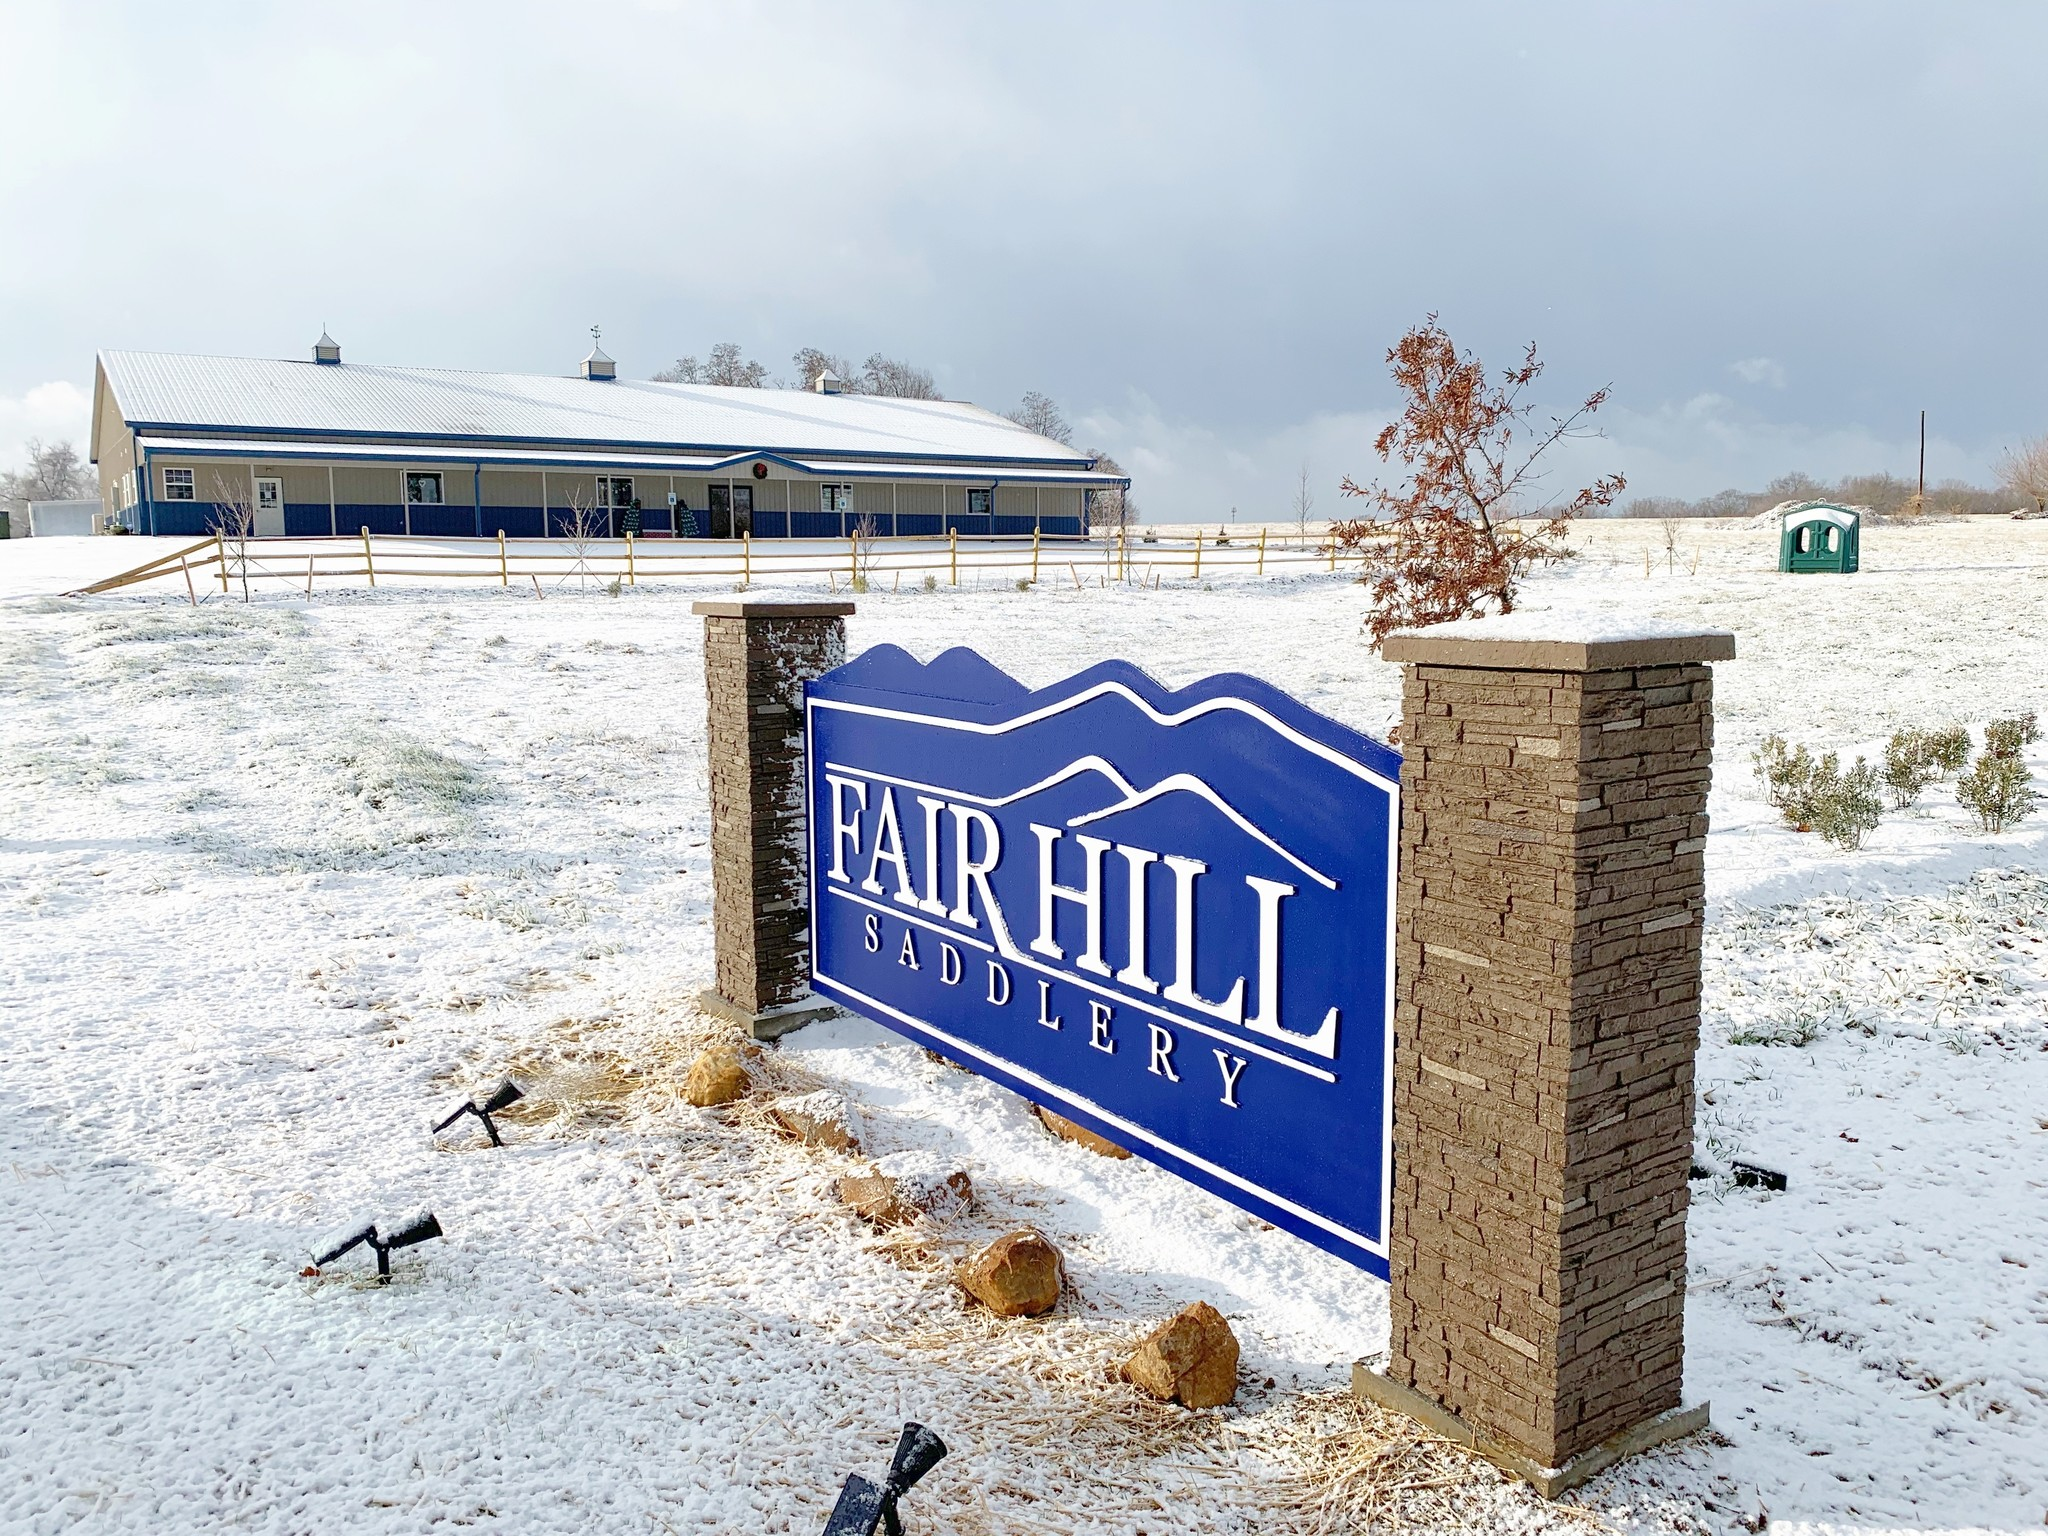 fair hill saddlery elkton maryland snow